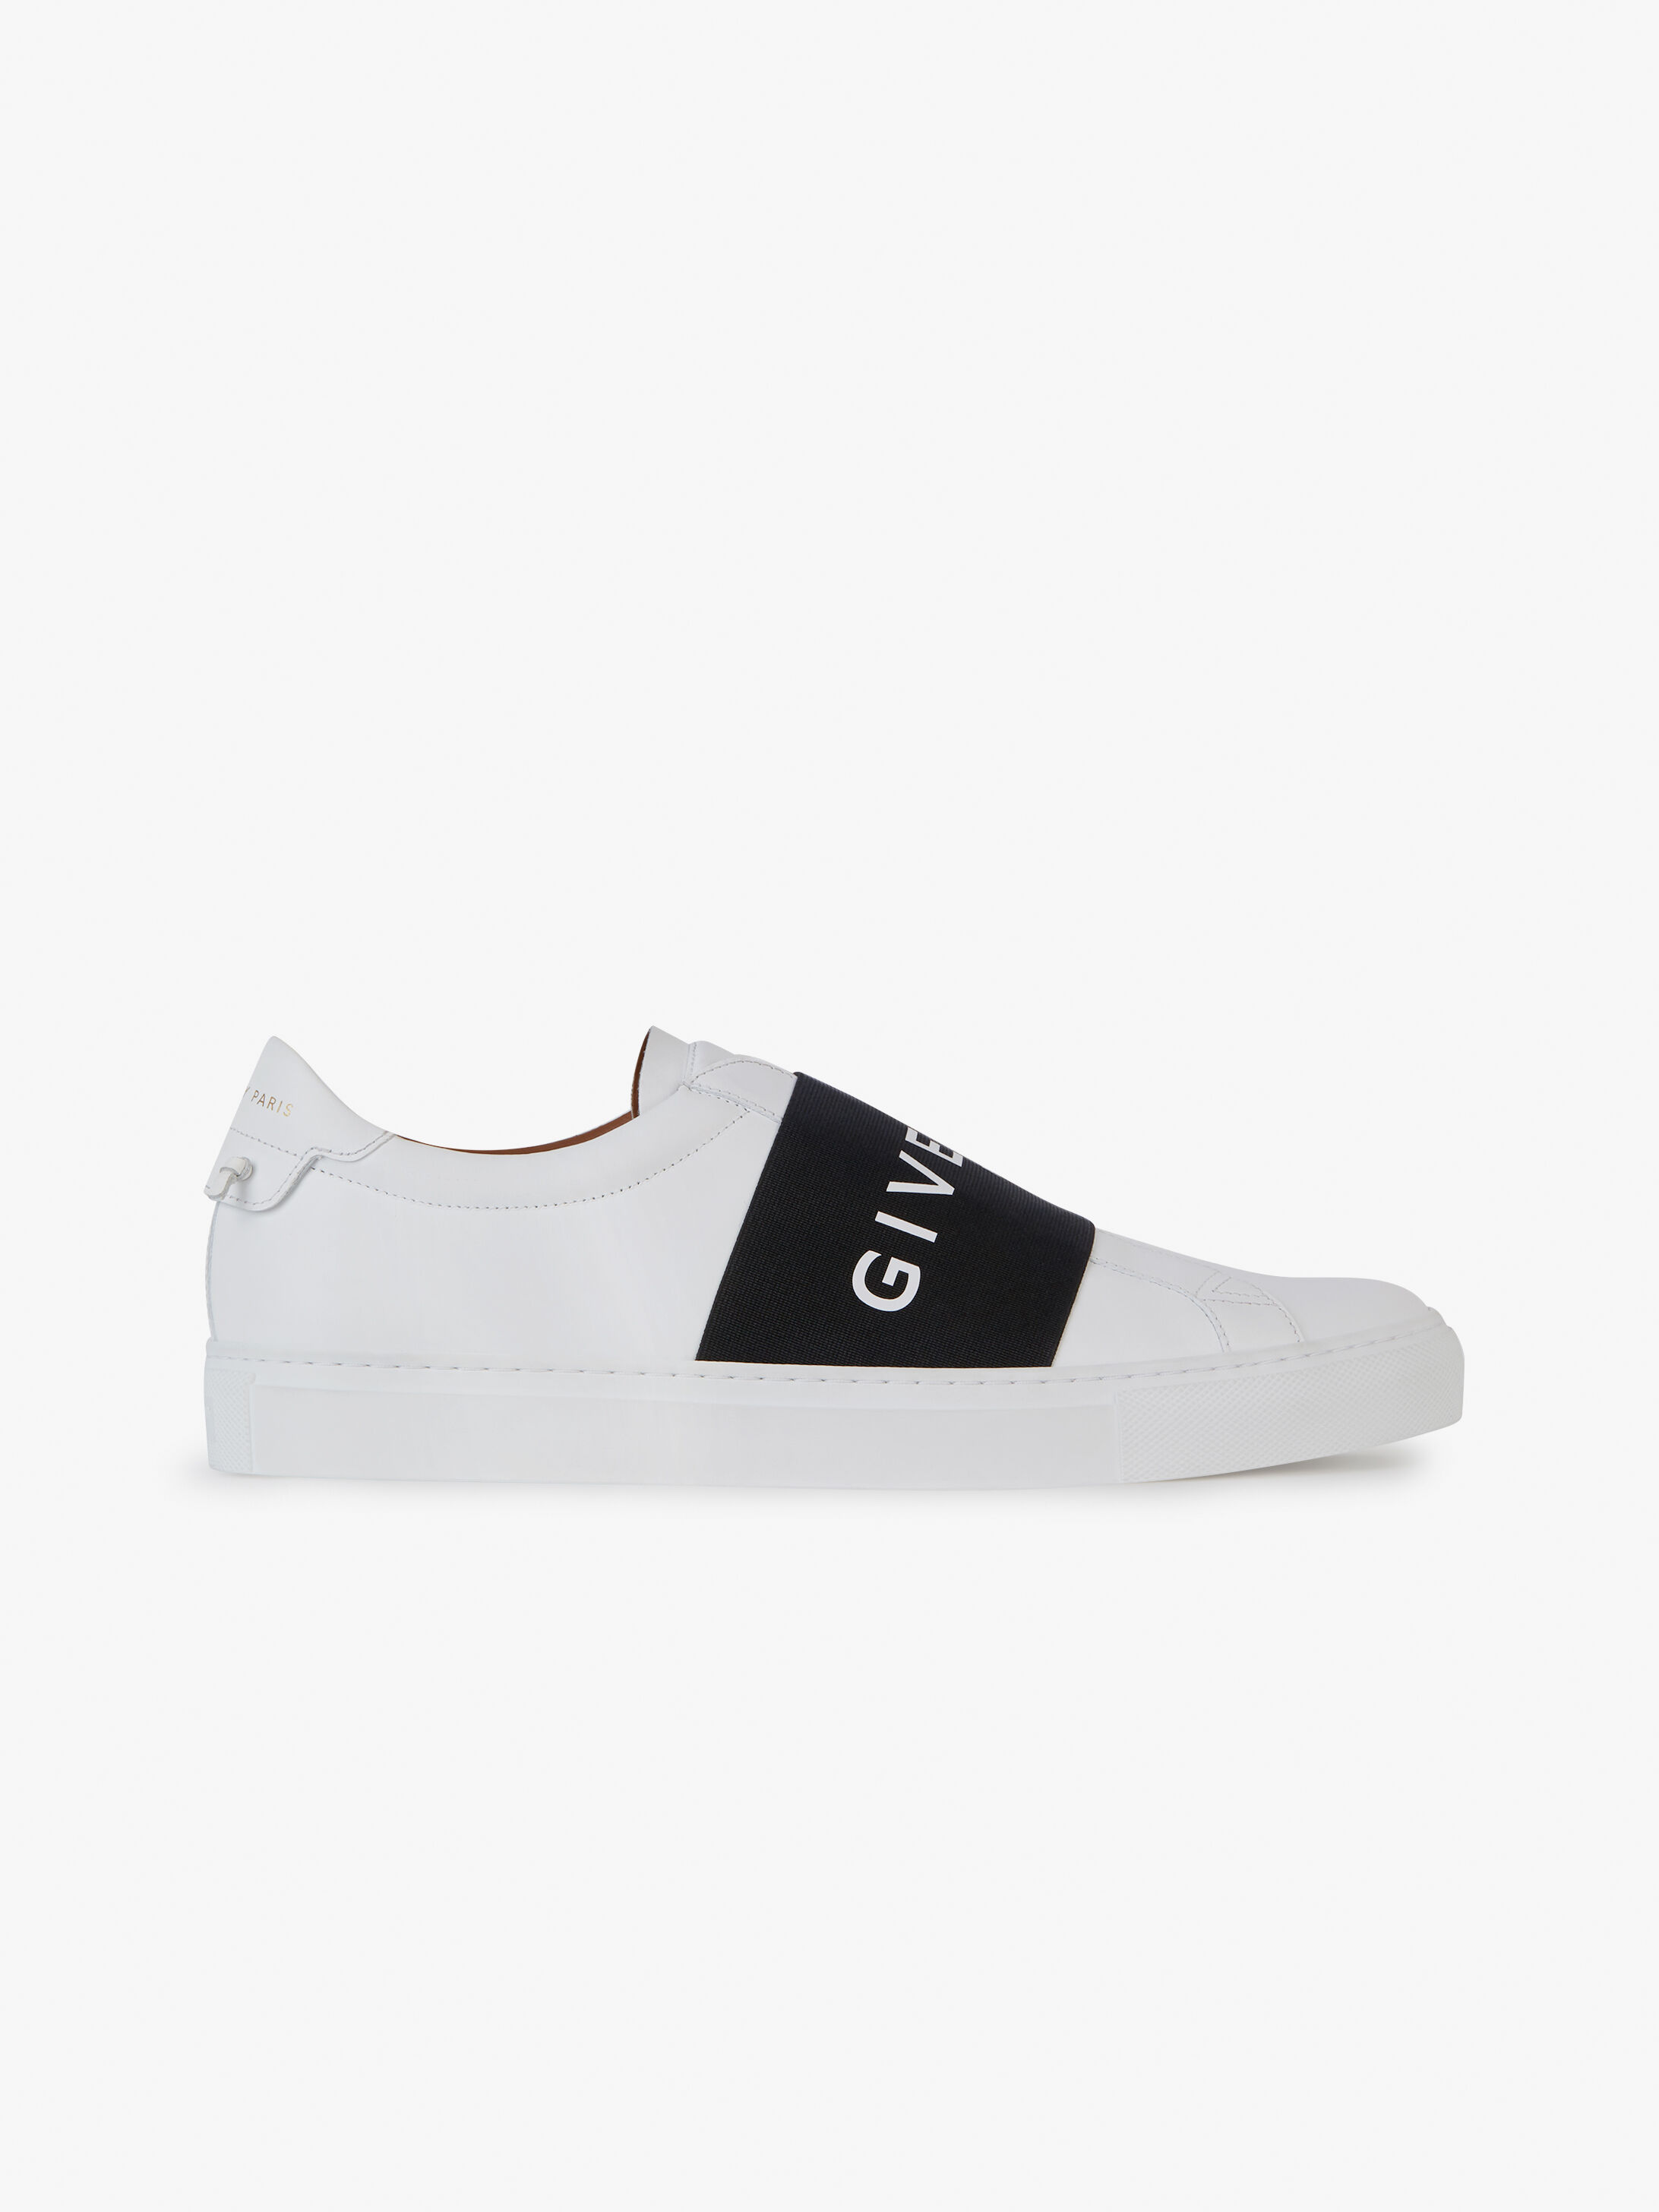 Men s Sneakers collection by Givenchy.  a4695d3f2